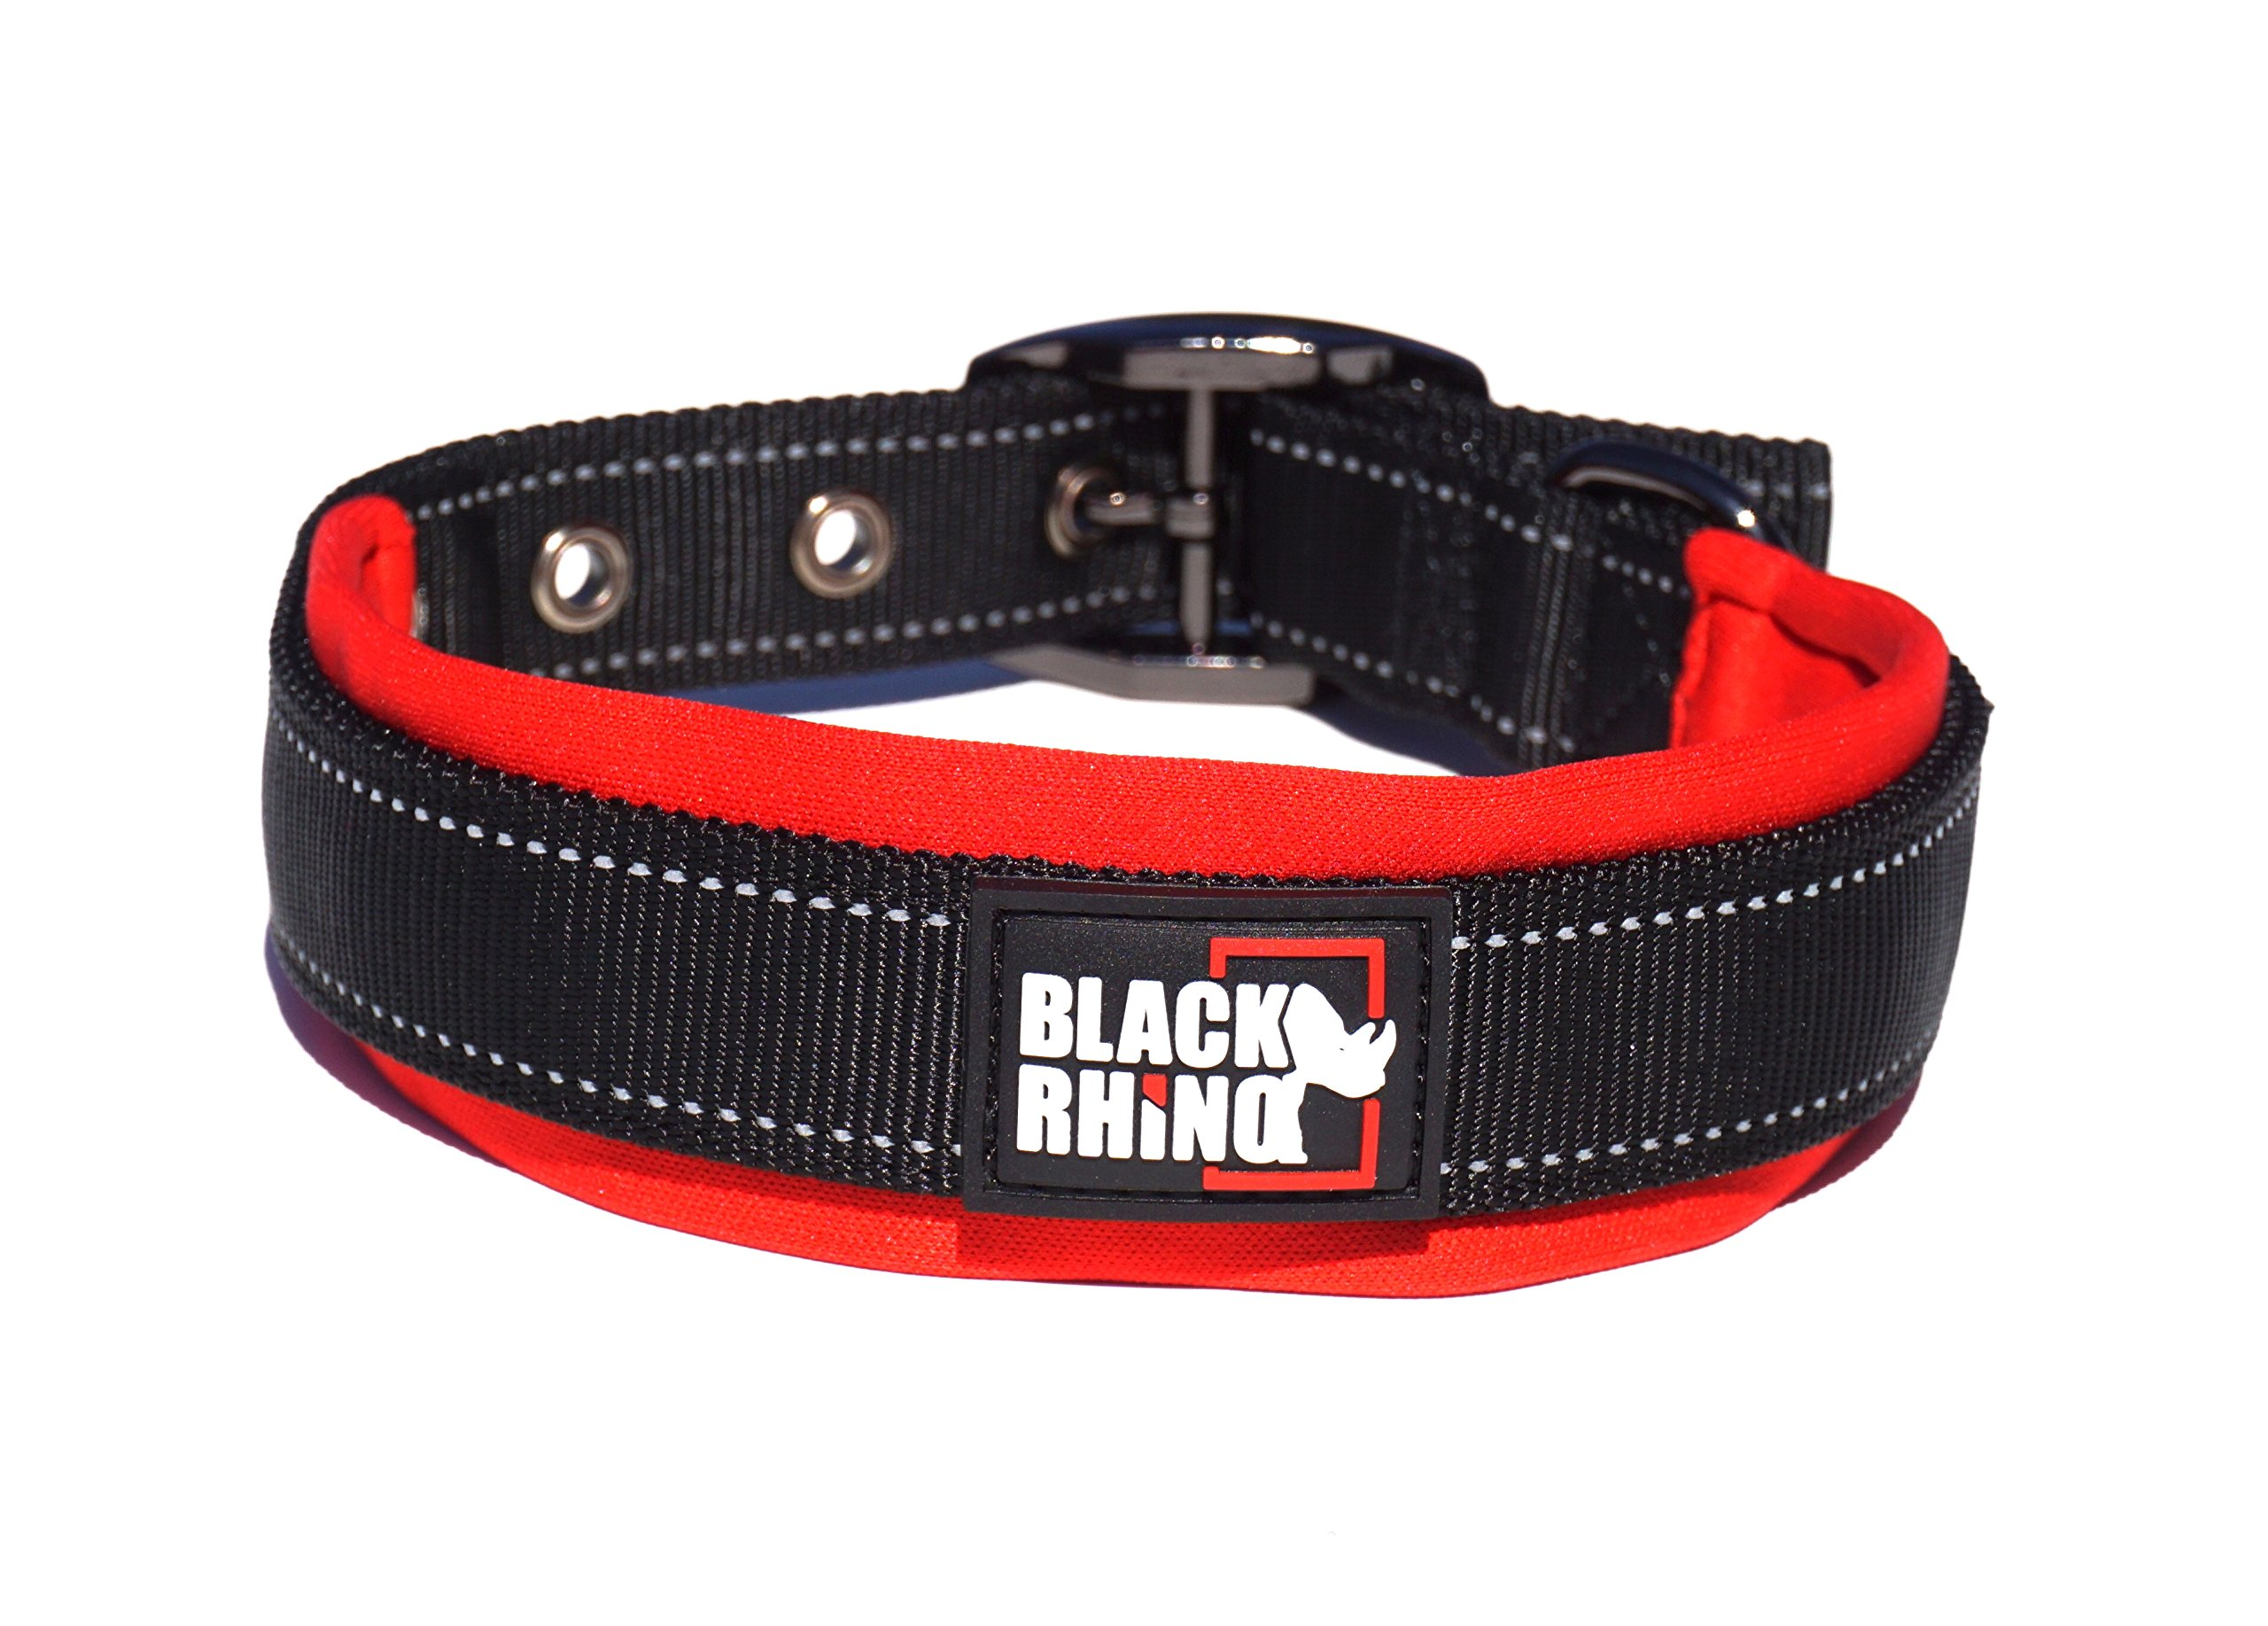 Black Rhino - The Comfort Collar Ultra Soft Neoprene Padded Dog Collar for All Breeds - Heavy Duty Adjustable Reflective Weatherproof (Large, Red/Black)